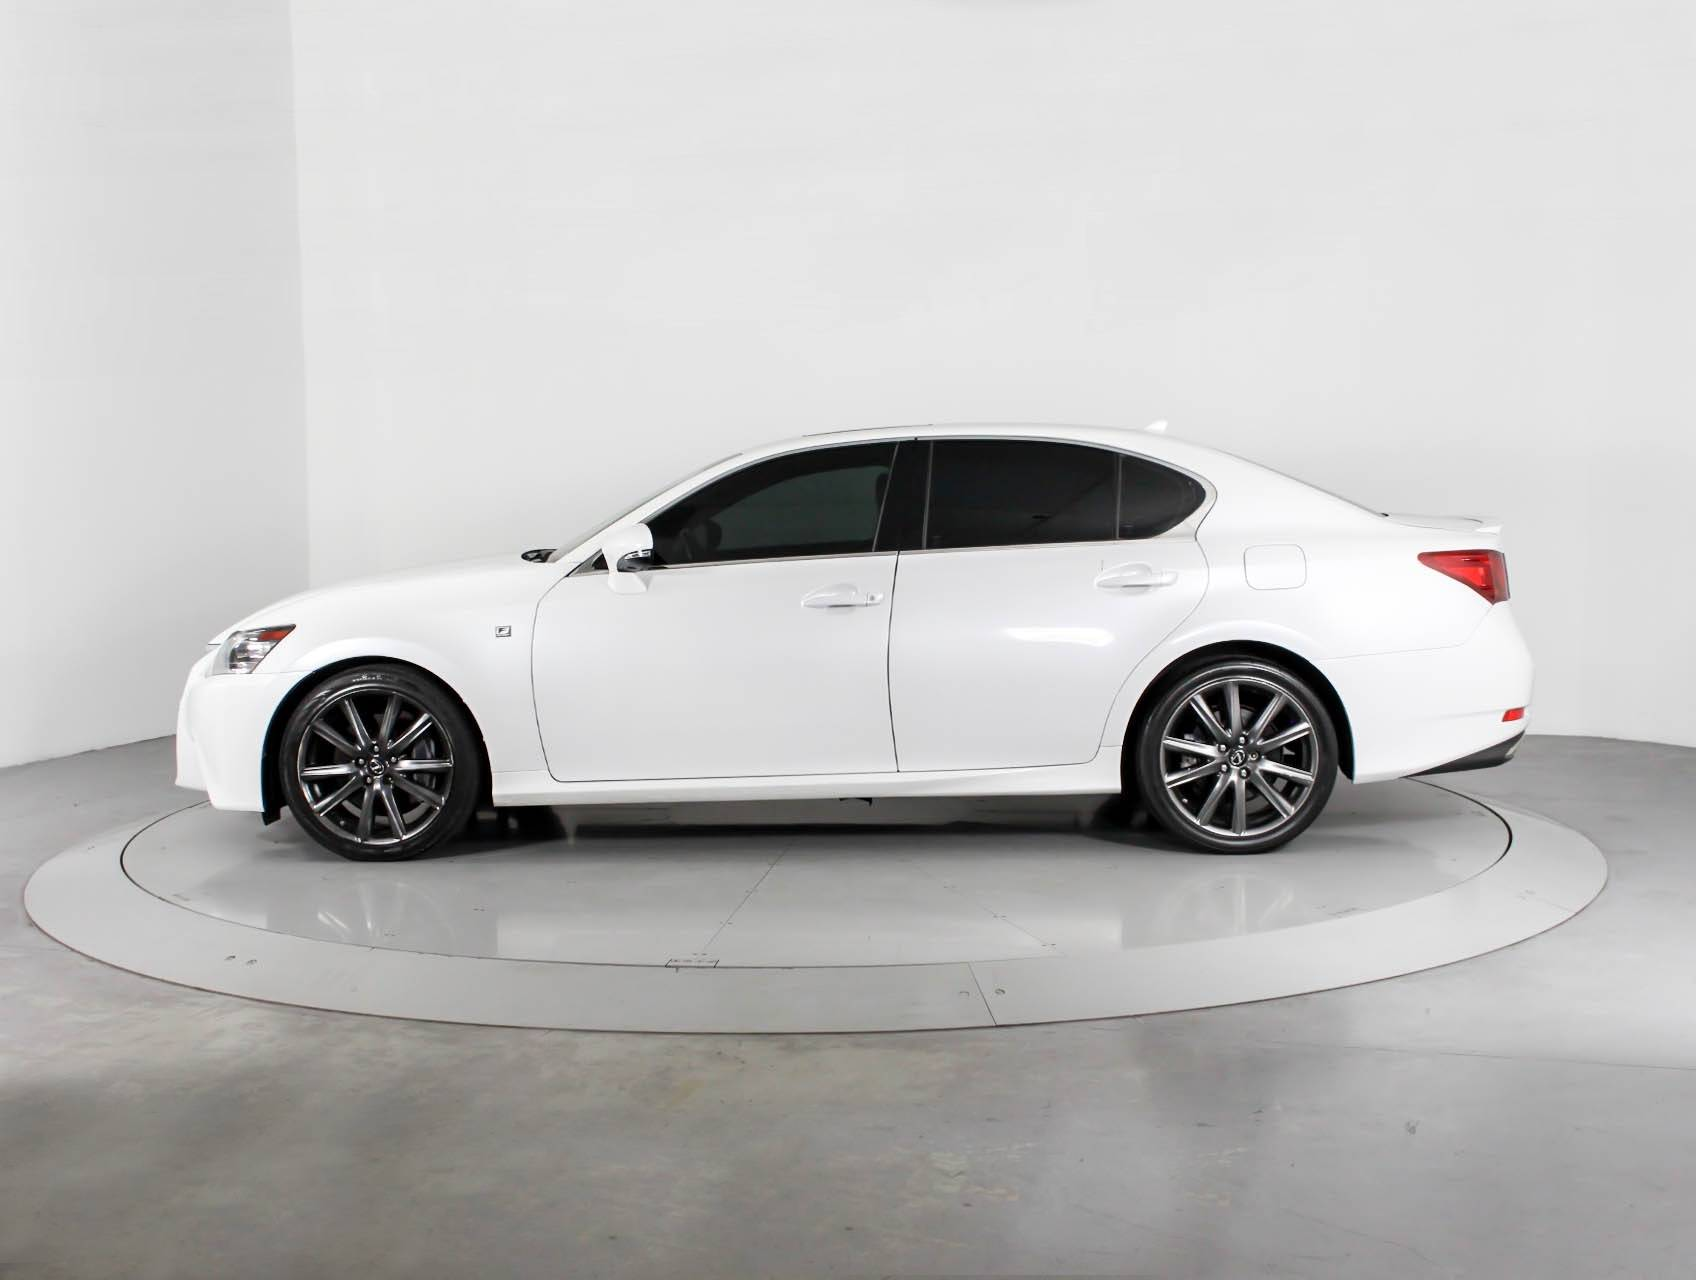 Used 2013 LEXUS GS 350 F Sport Sedan for sale in MIAMI, FL